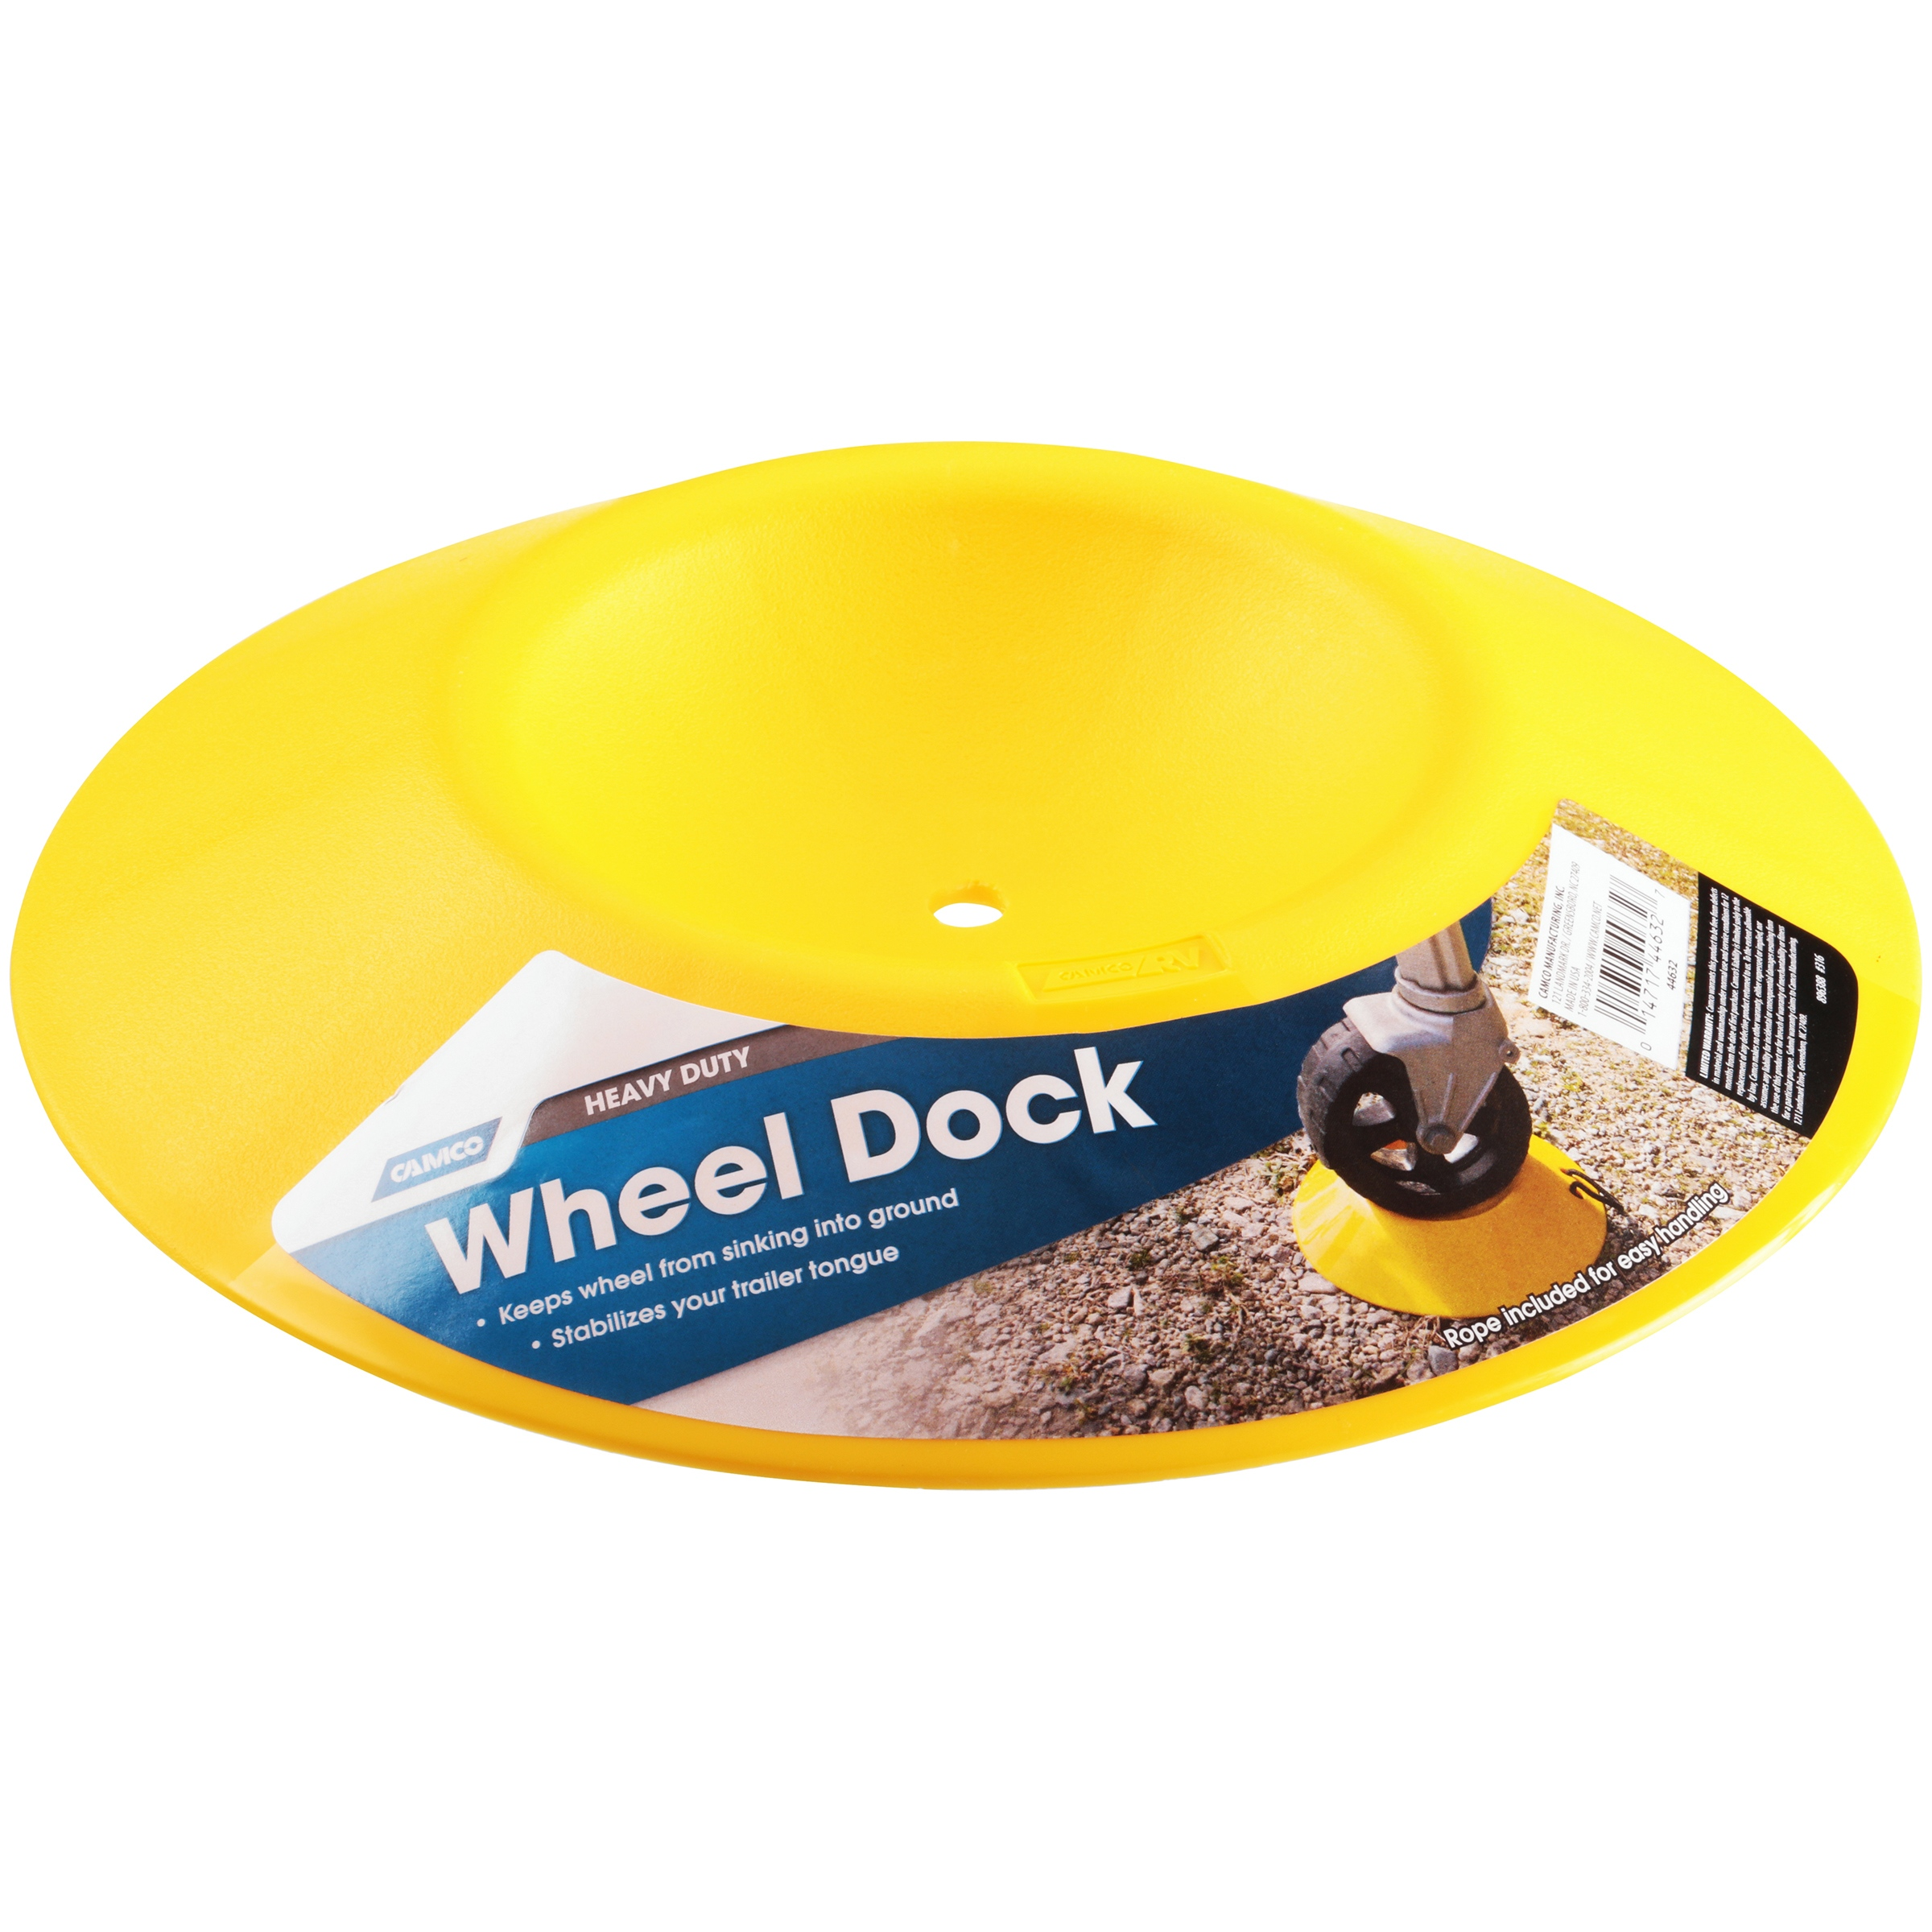 Camco Heavy Duty Wheel Dock